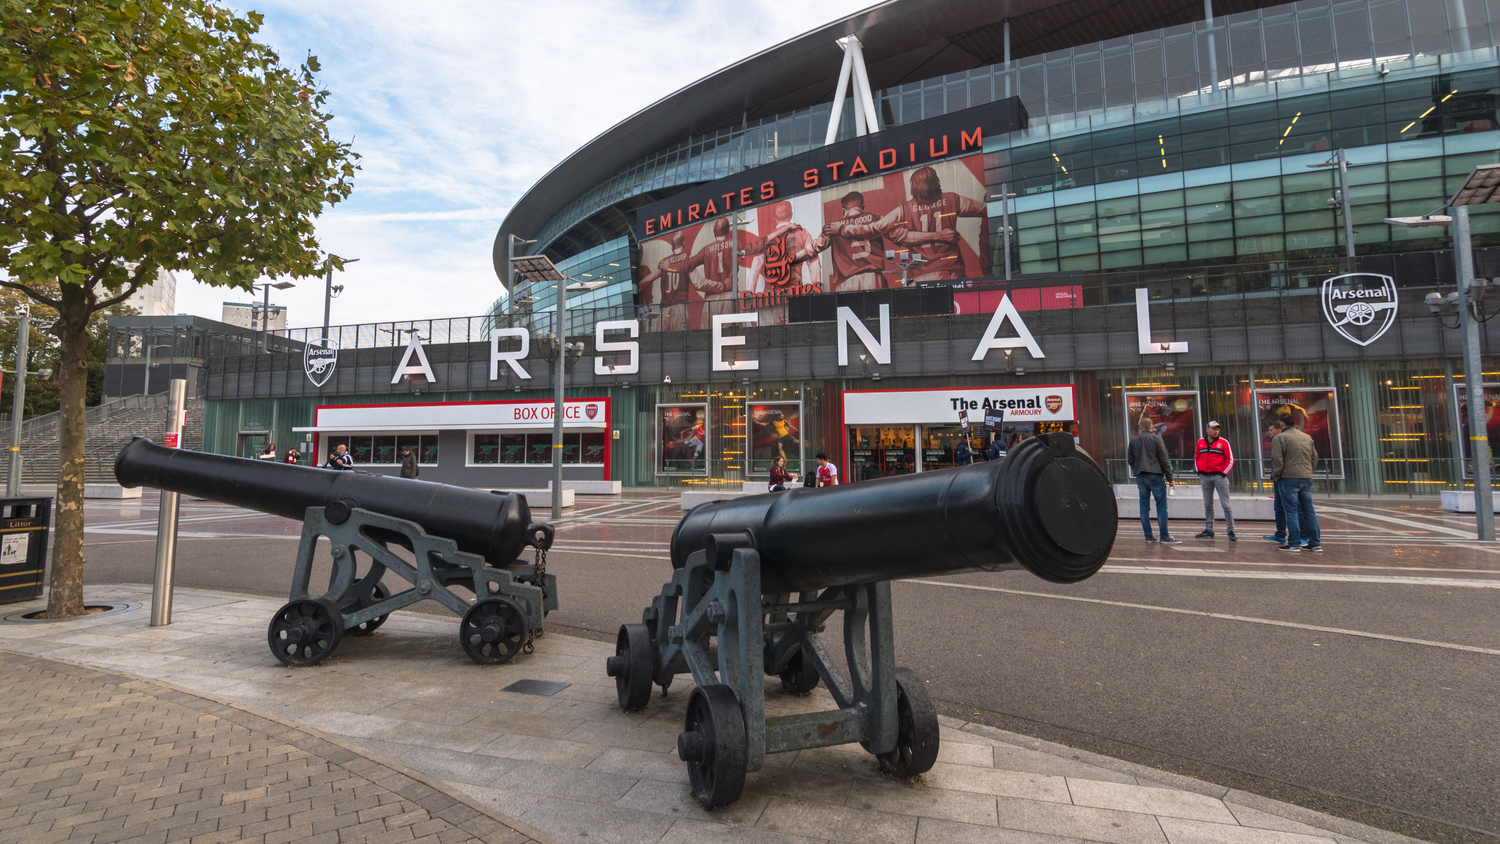 Arsenal FC's Emirates Stadium